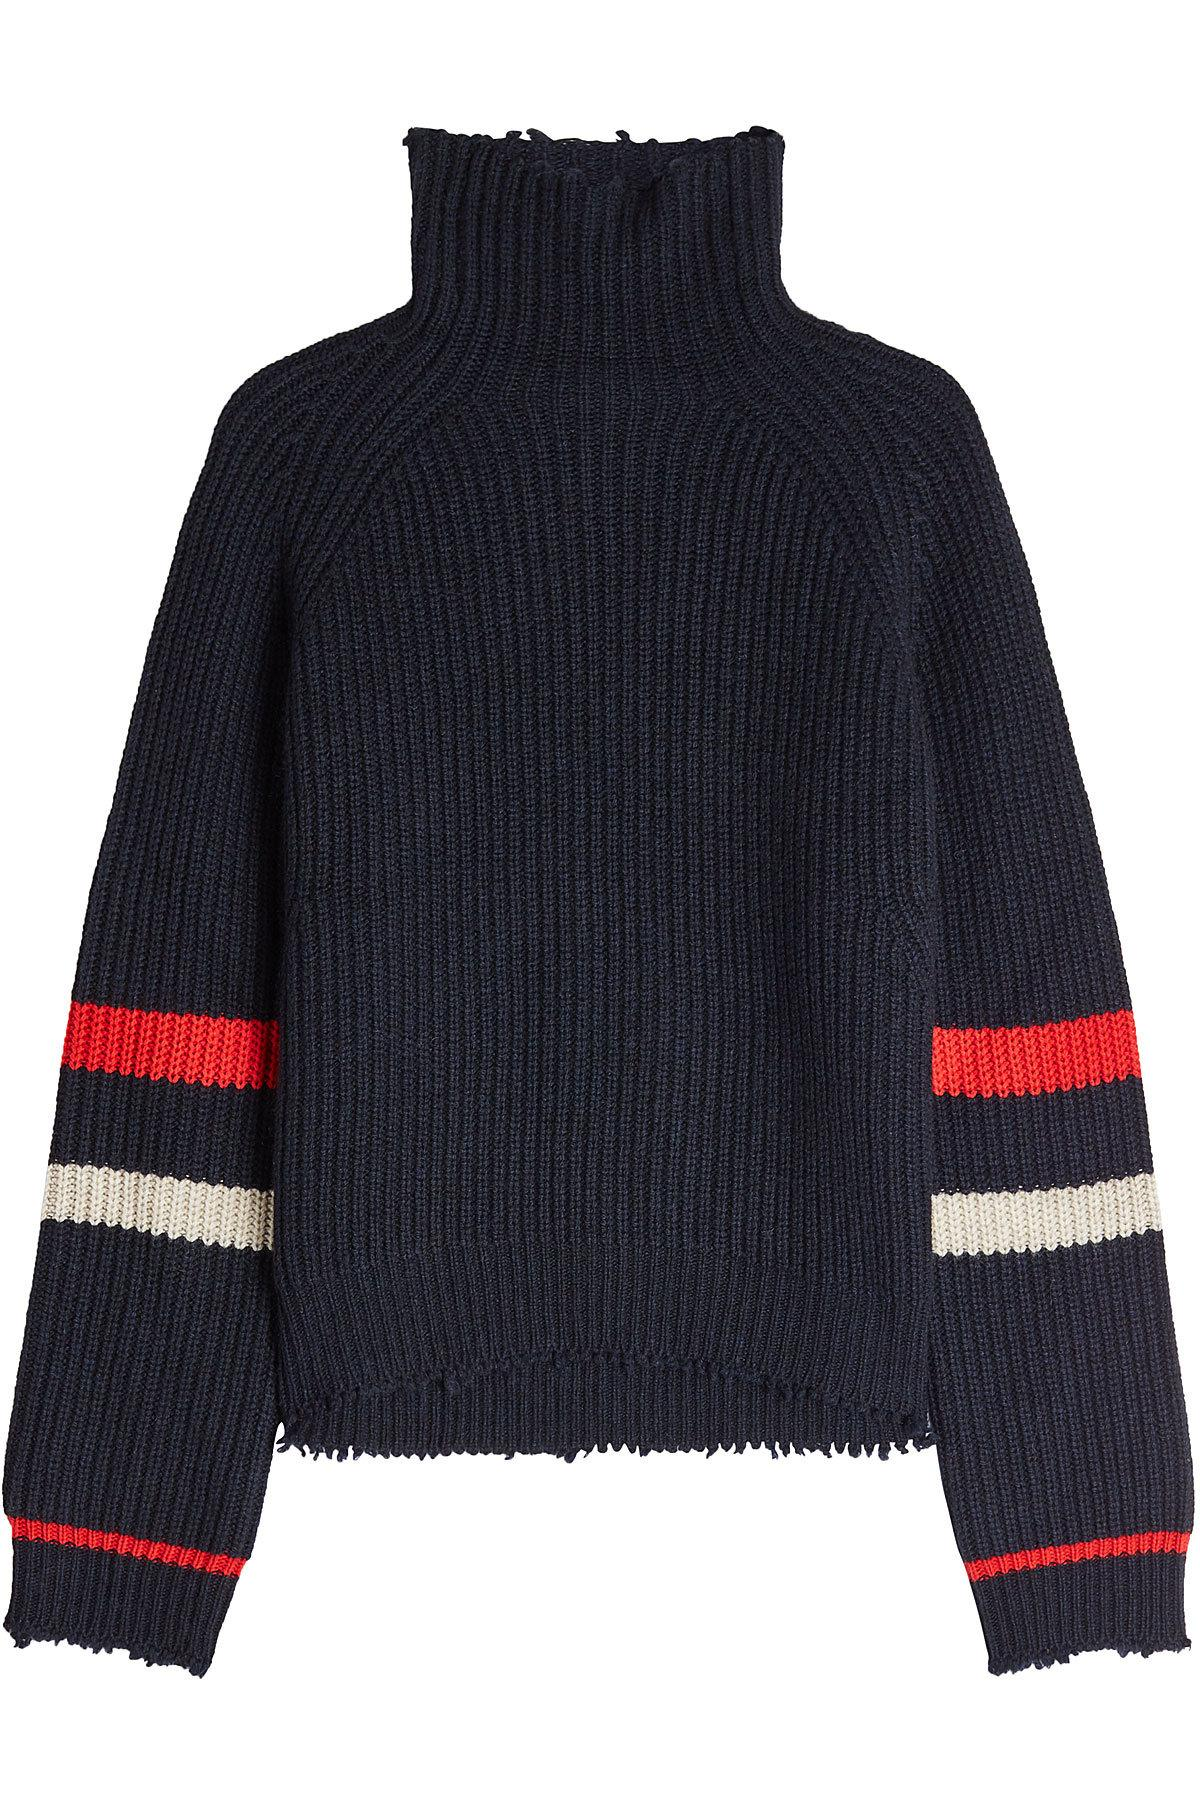 Zadig & Voltaire Distressed Turtleneck Pullover In Wool And Yak In Blue